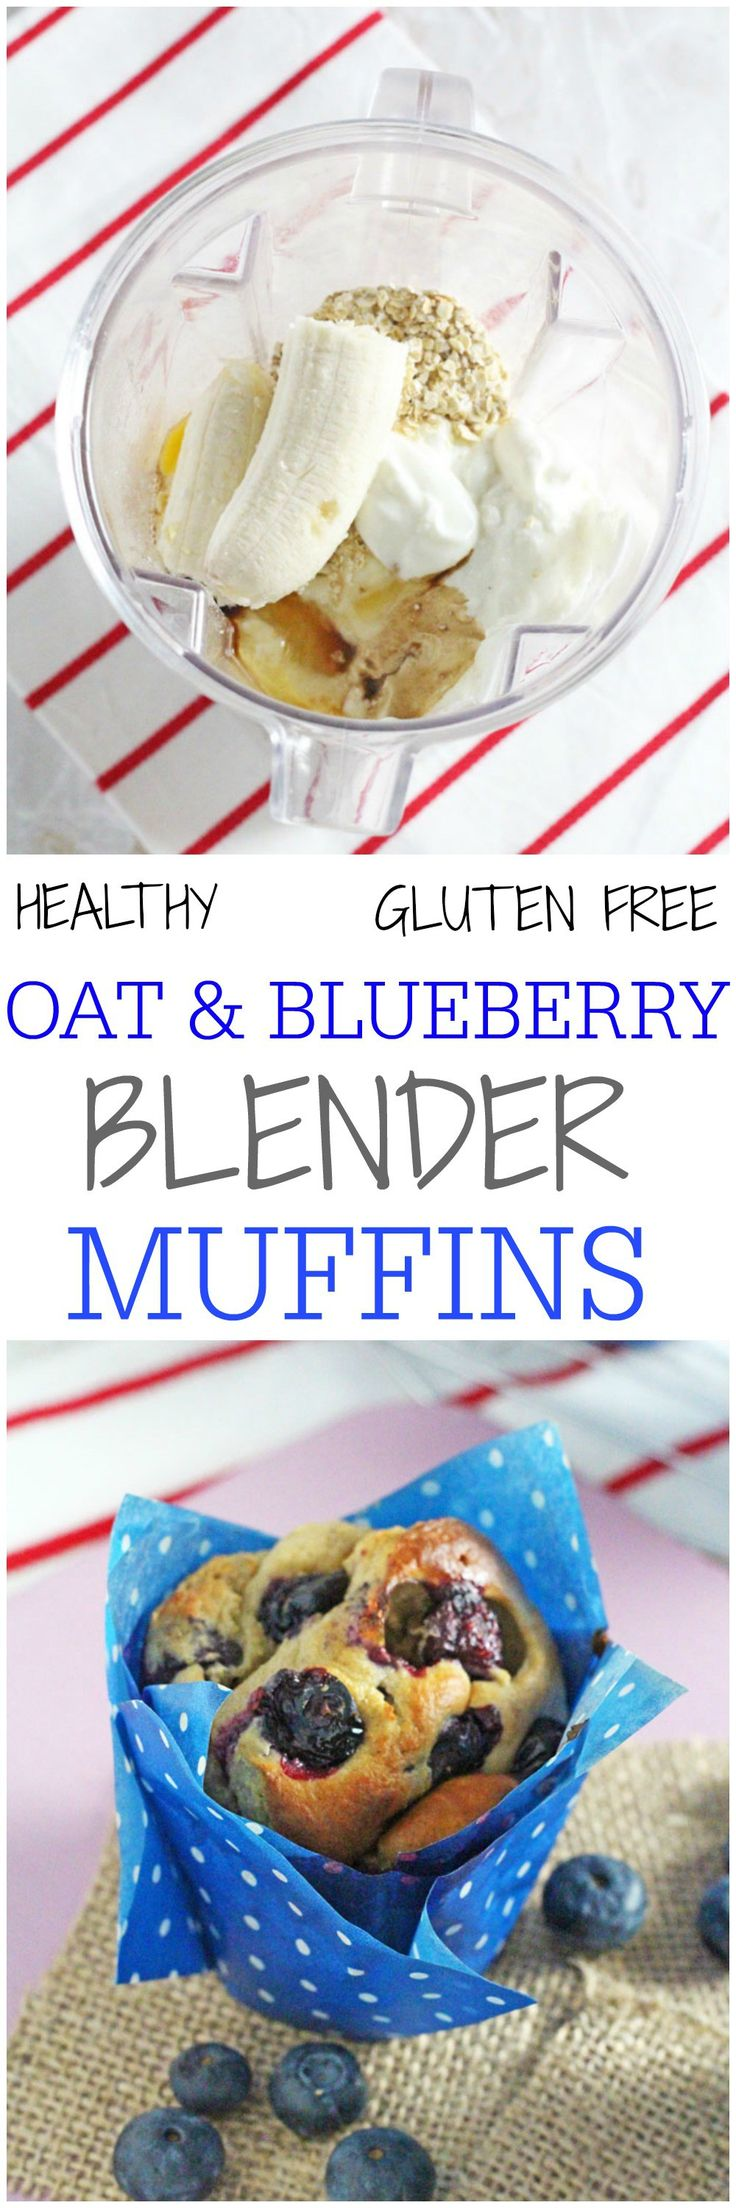 Delicious and super healthy, these gluten free Oat & Blueberry Blender Muffins are so easy to make and nutritious enough to have for breakfast! My Fussy Eater blog